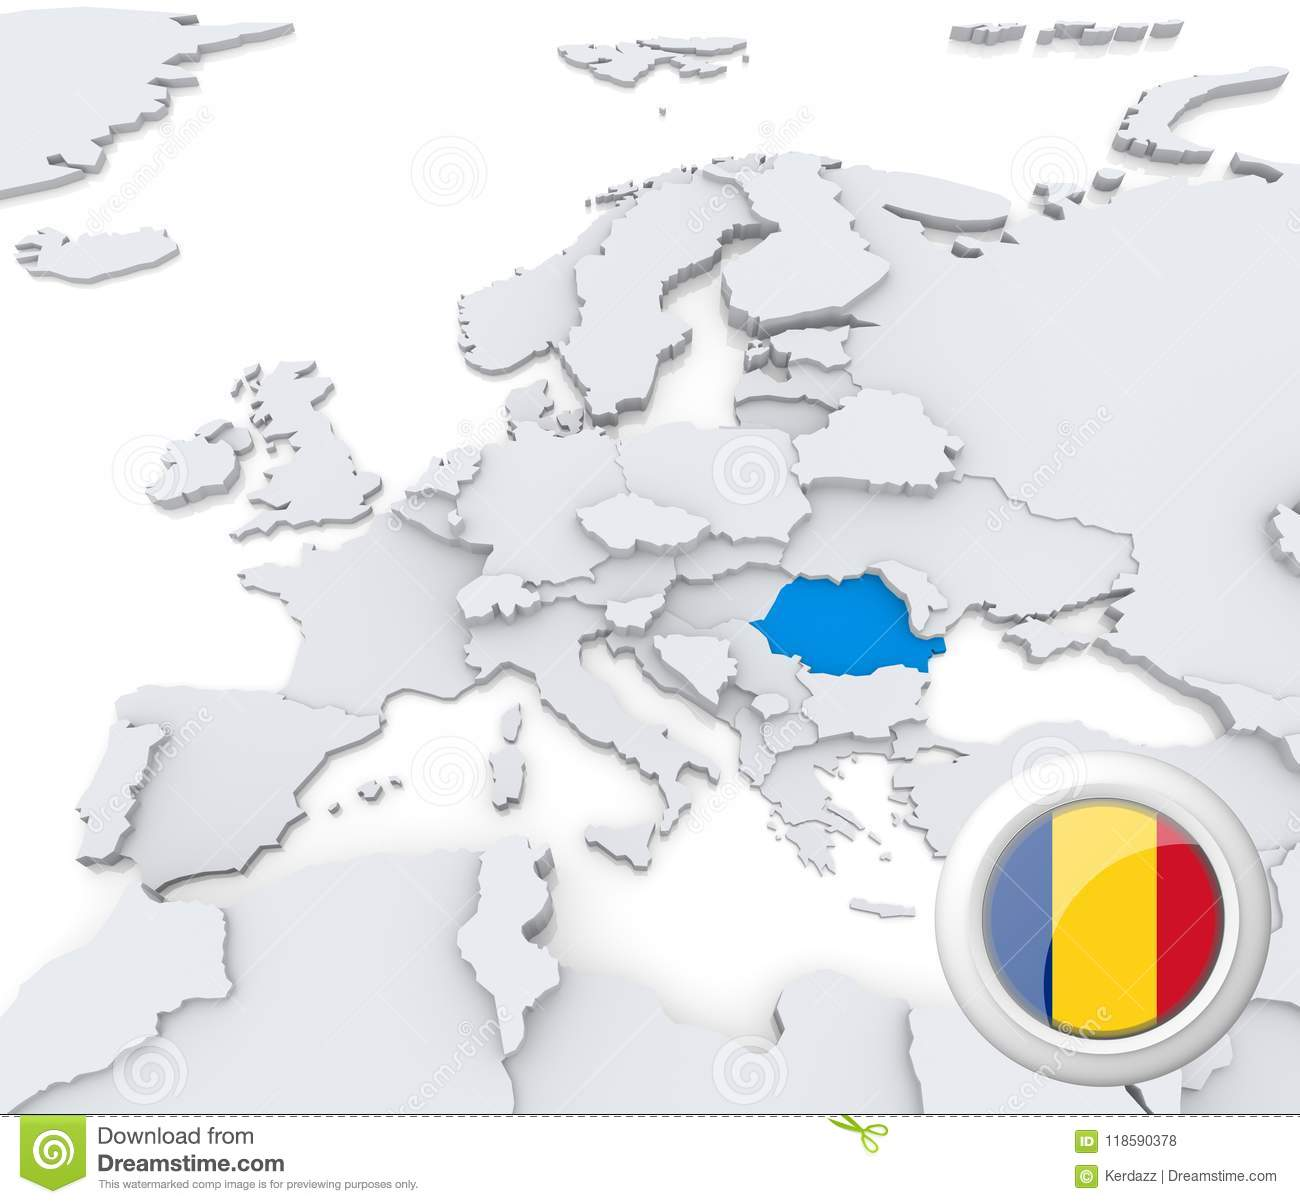 Carte De Leurope Roumanie.La Roumanie Sur La Carte De L Europe Illustration Stock